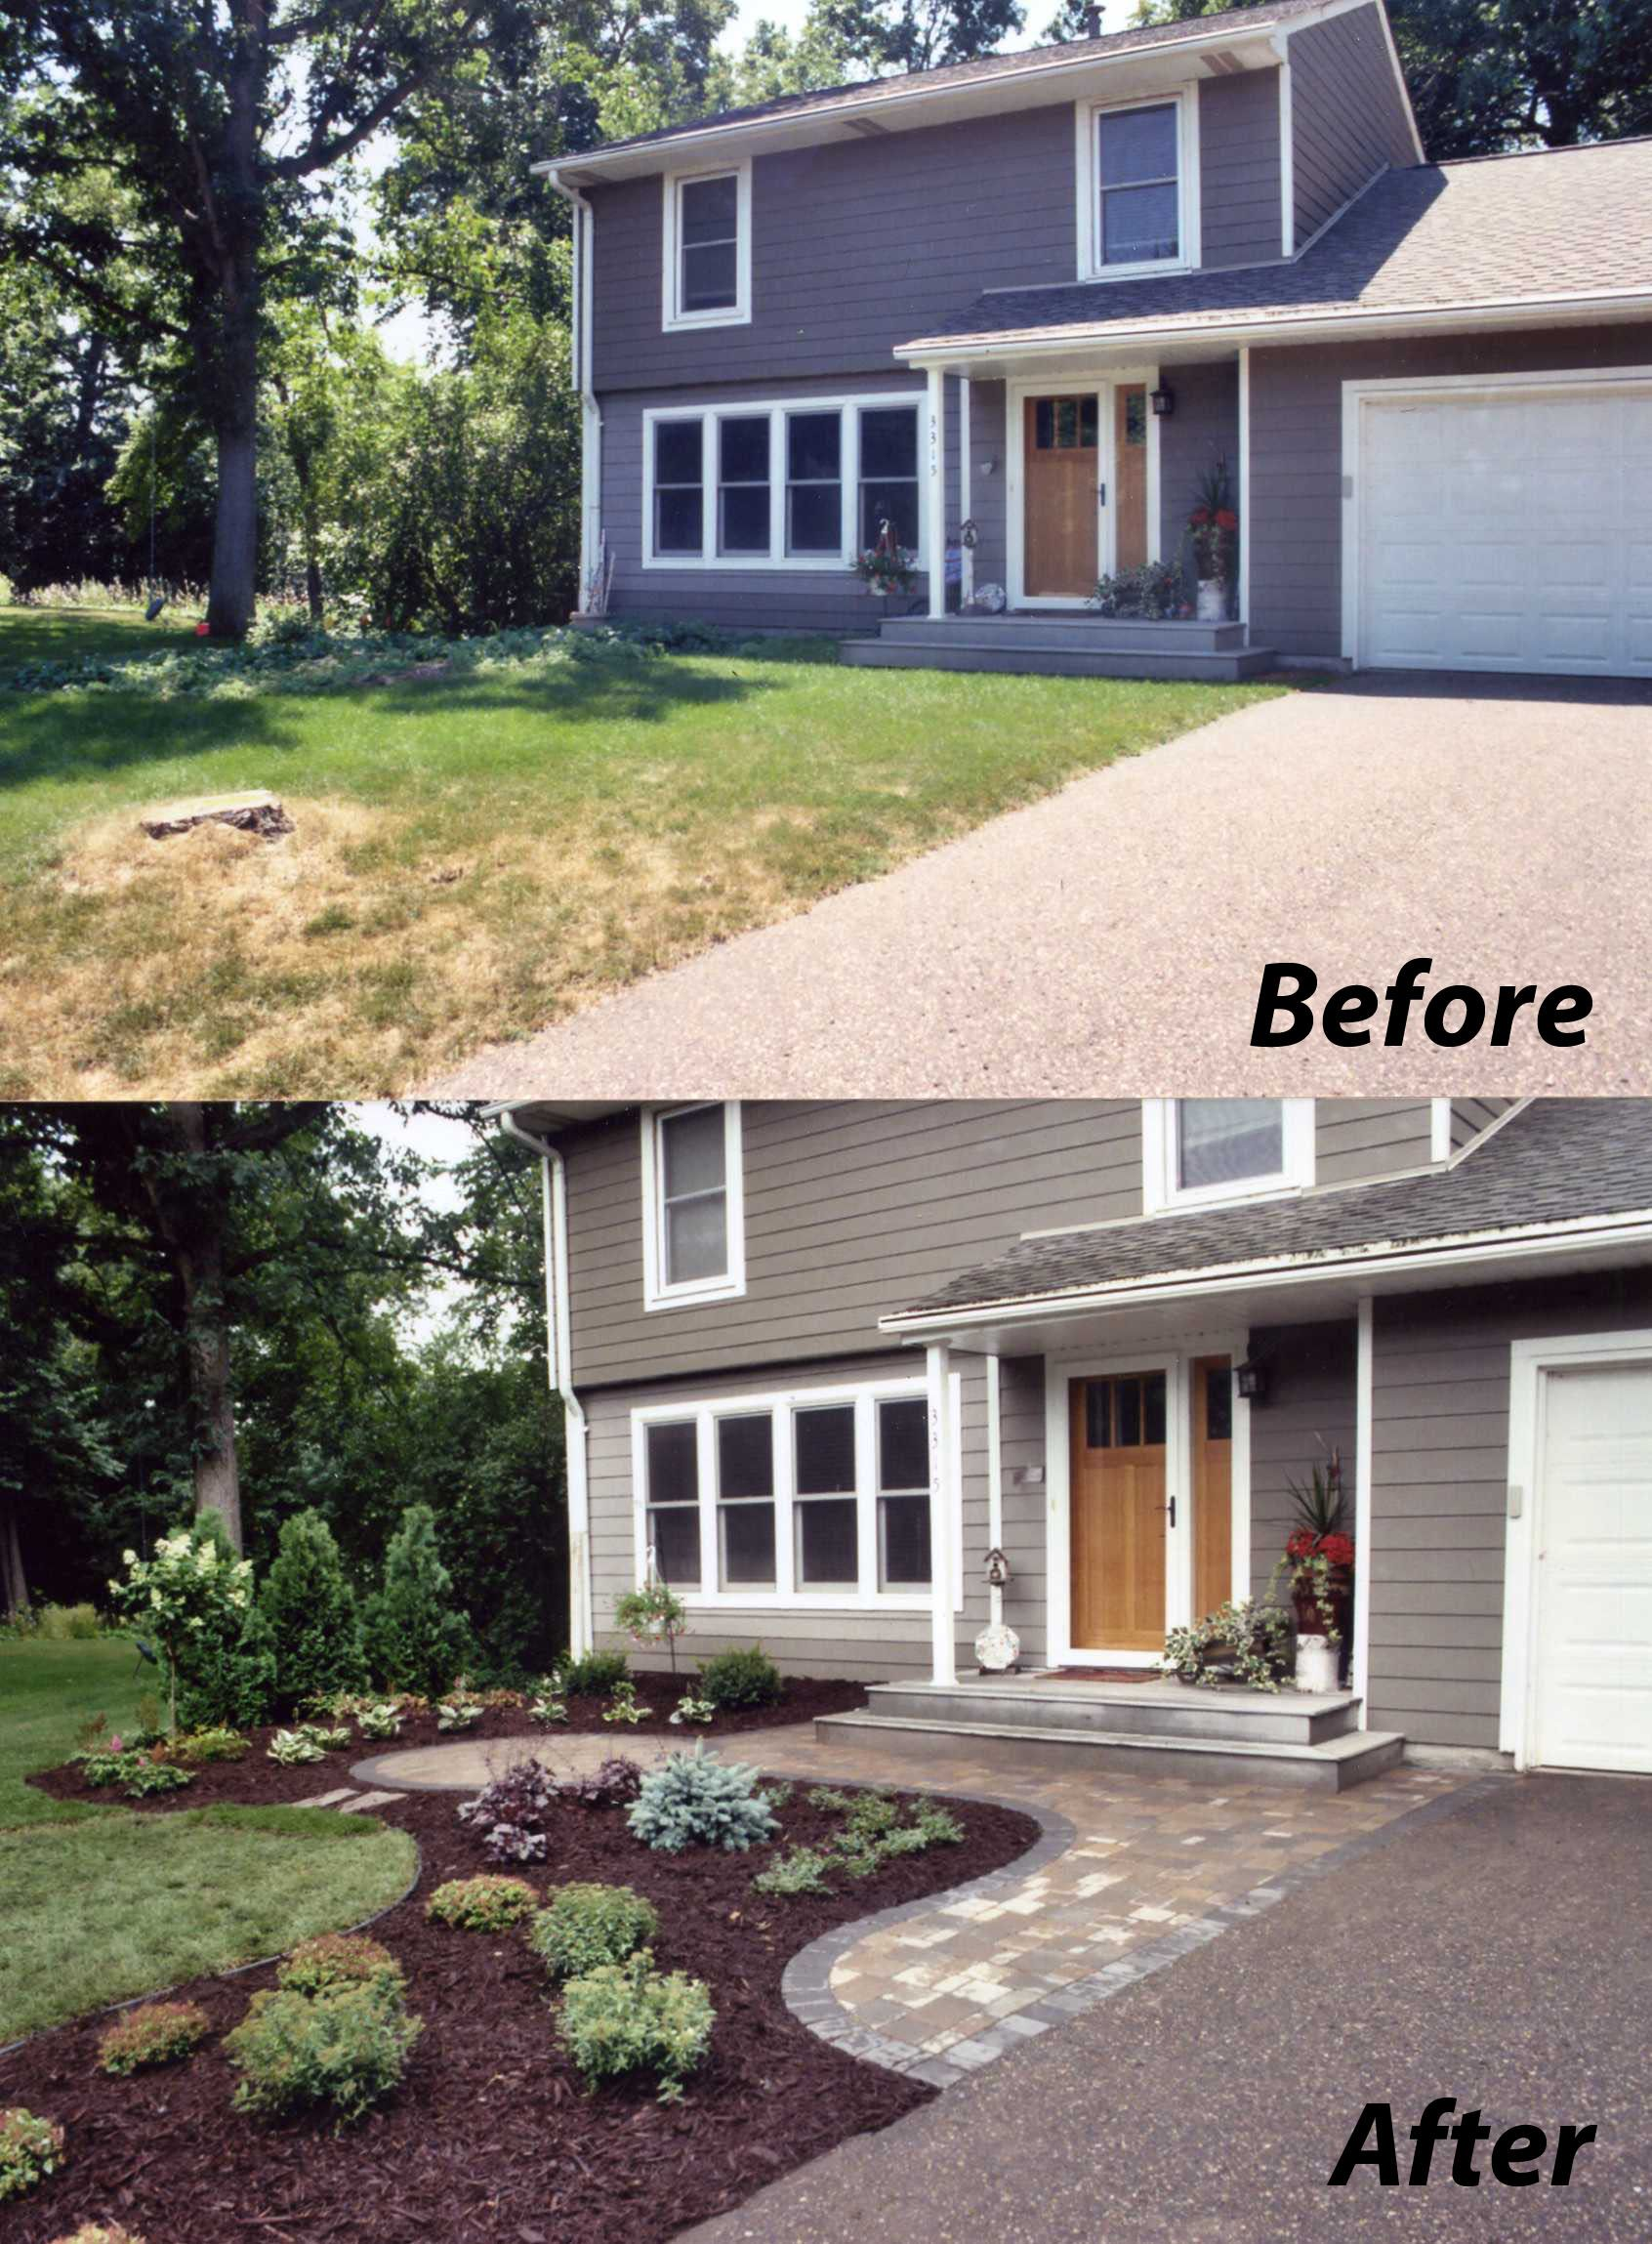 Before And After The After Shows The New Paver Entry With A Small Patio Along With Front